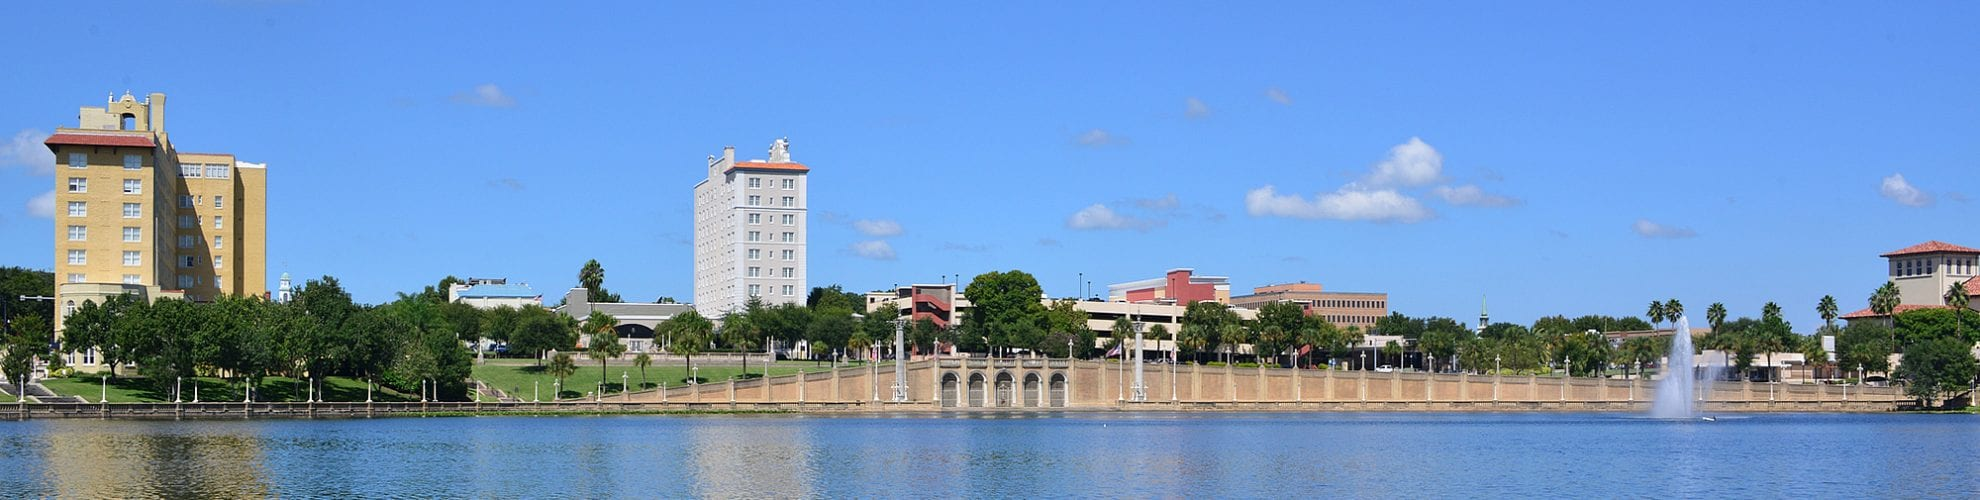 Photo of Lake Morton skyline in Lakeland, FL